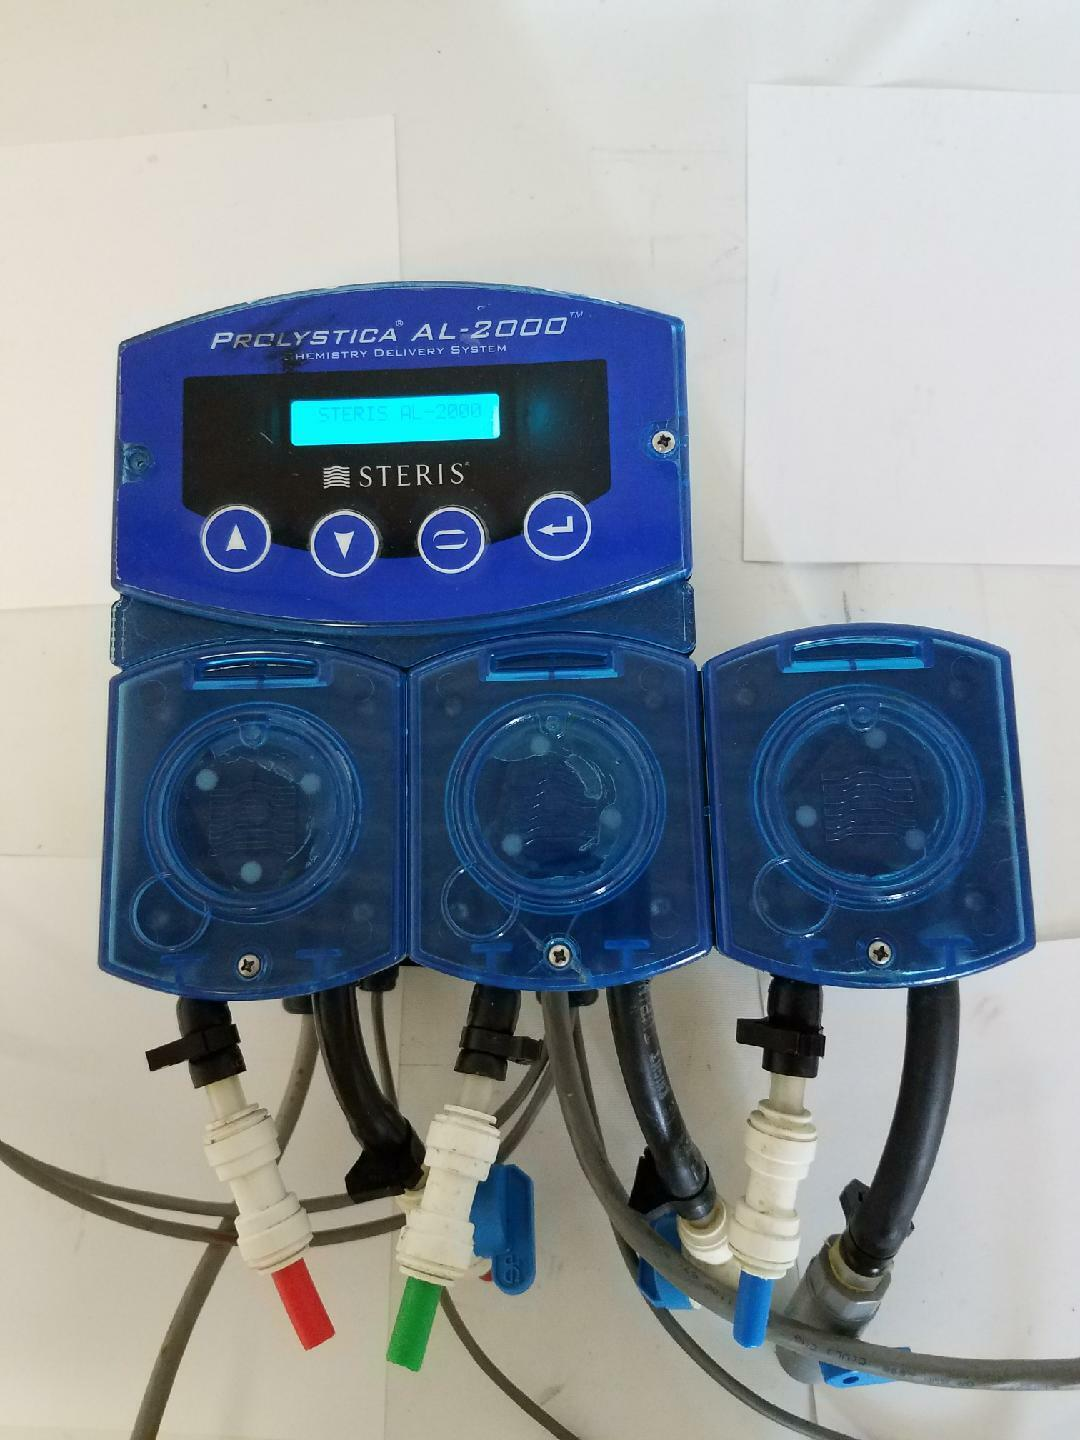 Steris Prolystica AL-2000 Chemistry Delivery System